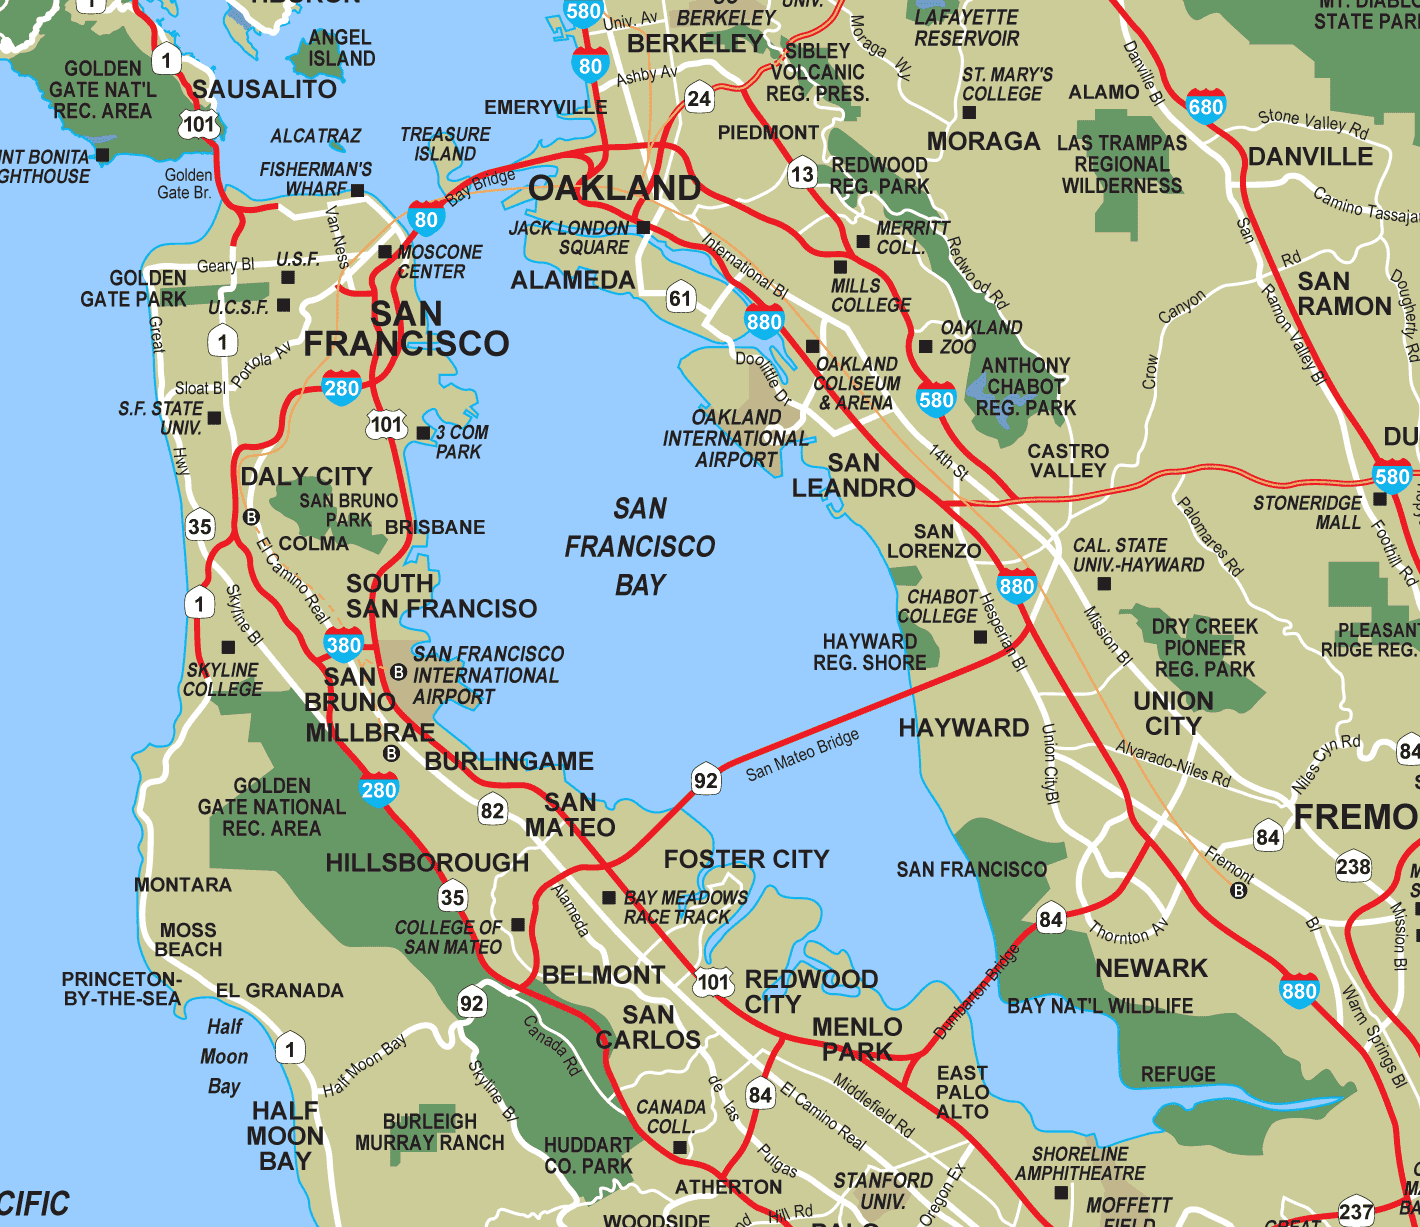 San Francisco Bay Mapsof Net This map shows cities, towns, highways, main roads, secondary roads in san francisco bay area. mapsof net